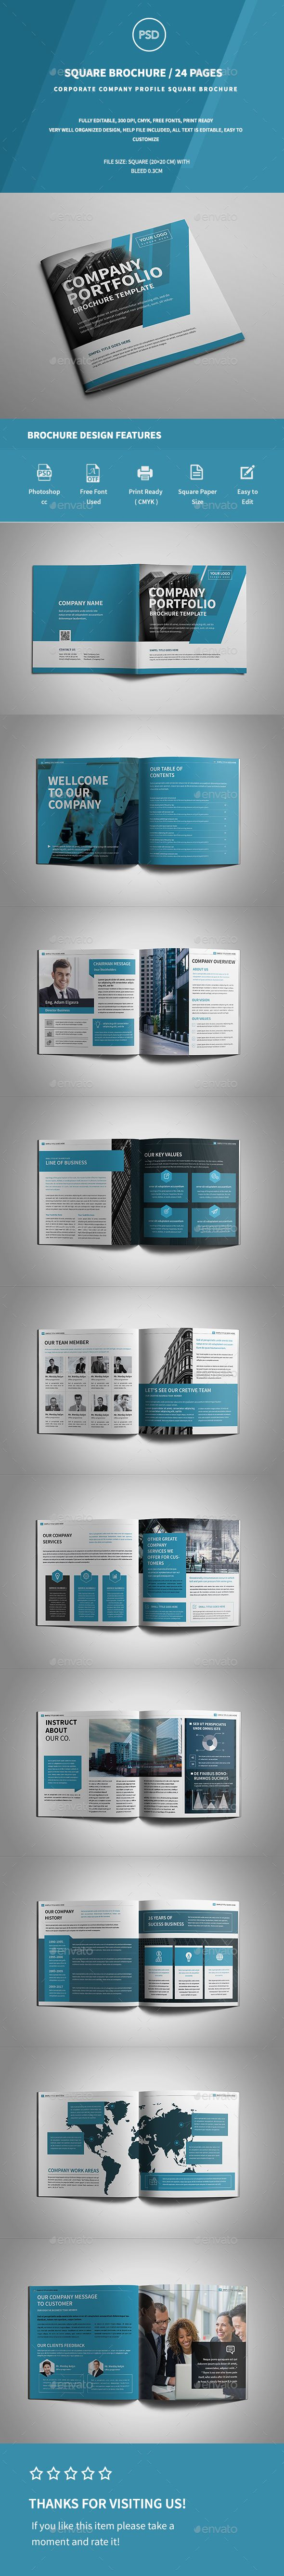 Square Company Profile Brochure - Corporate Brochures Download here : https://graphicriver.net/item/square-company-profile-brochure/19470078?s_rank=33&ref=Al-fatih